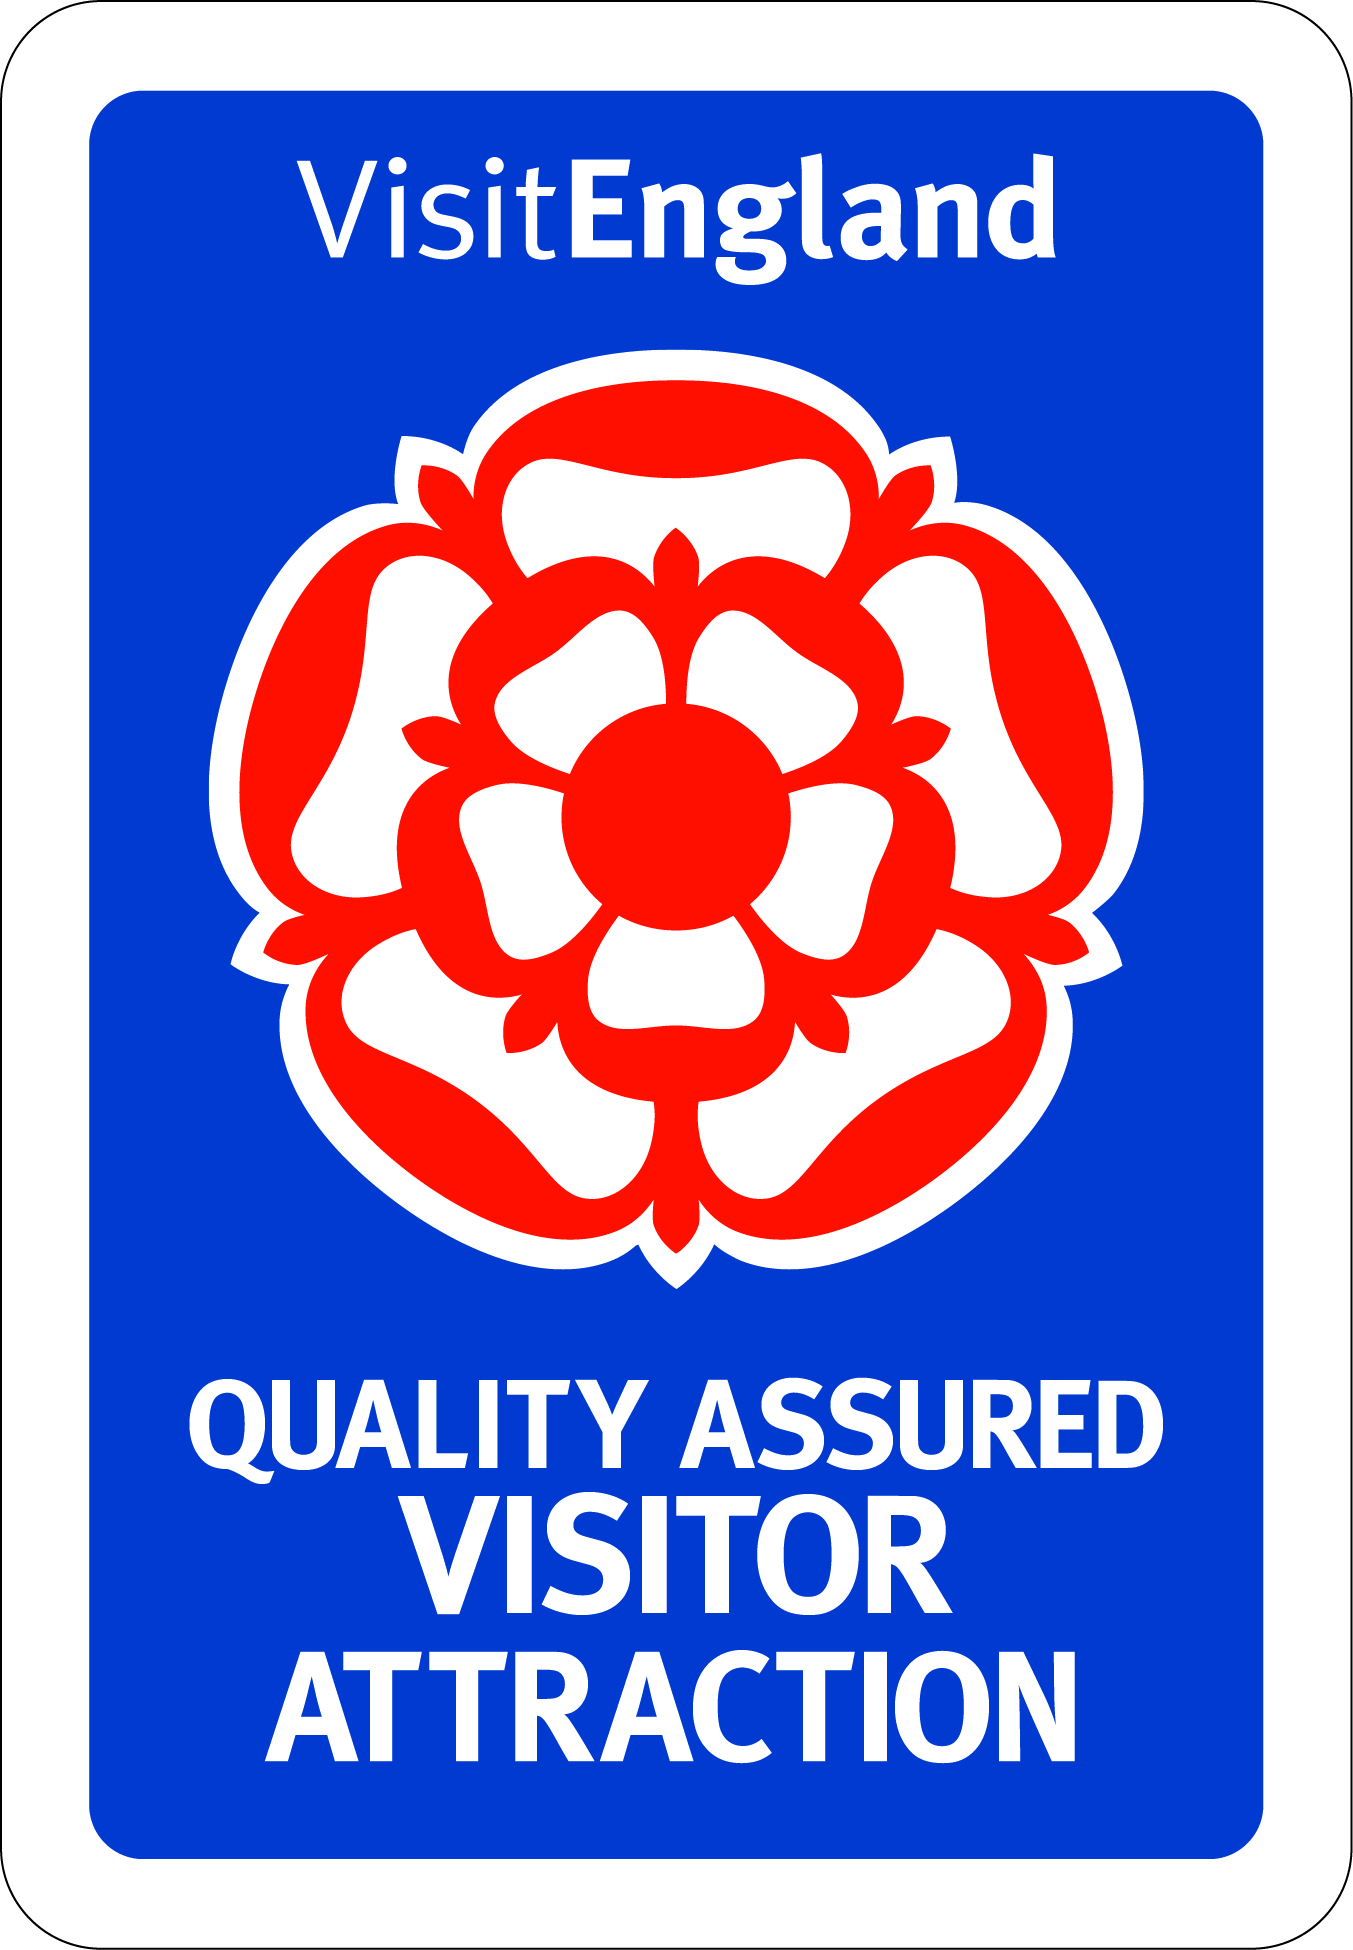 Visitor%20Attraction%20-%20Quality%20Assured%20Visitor%20Attraction